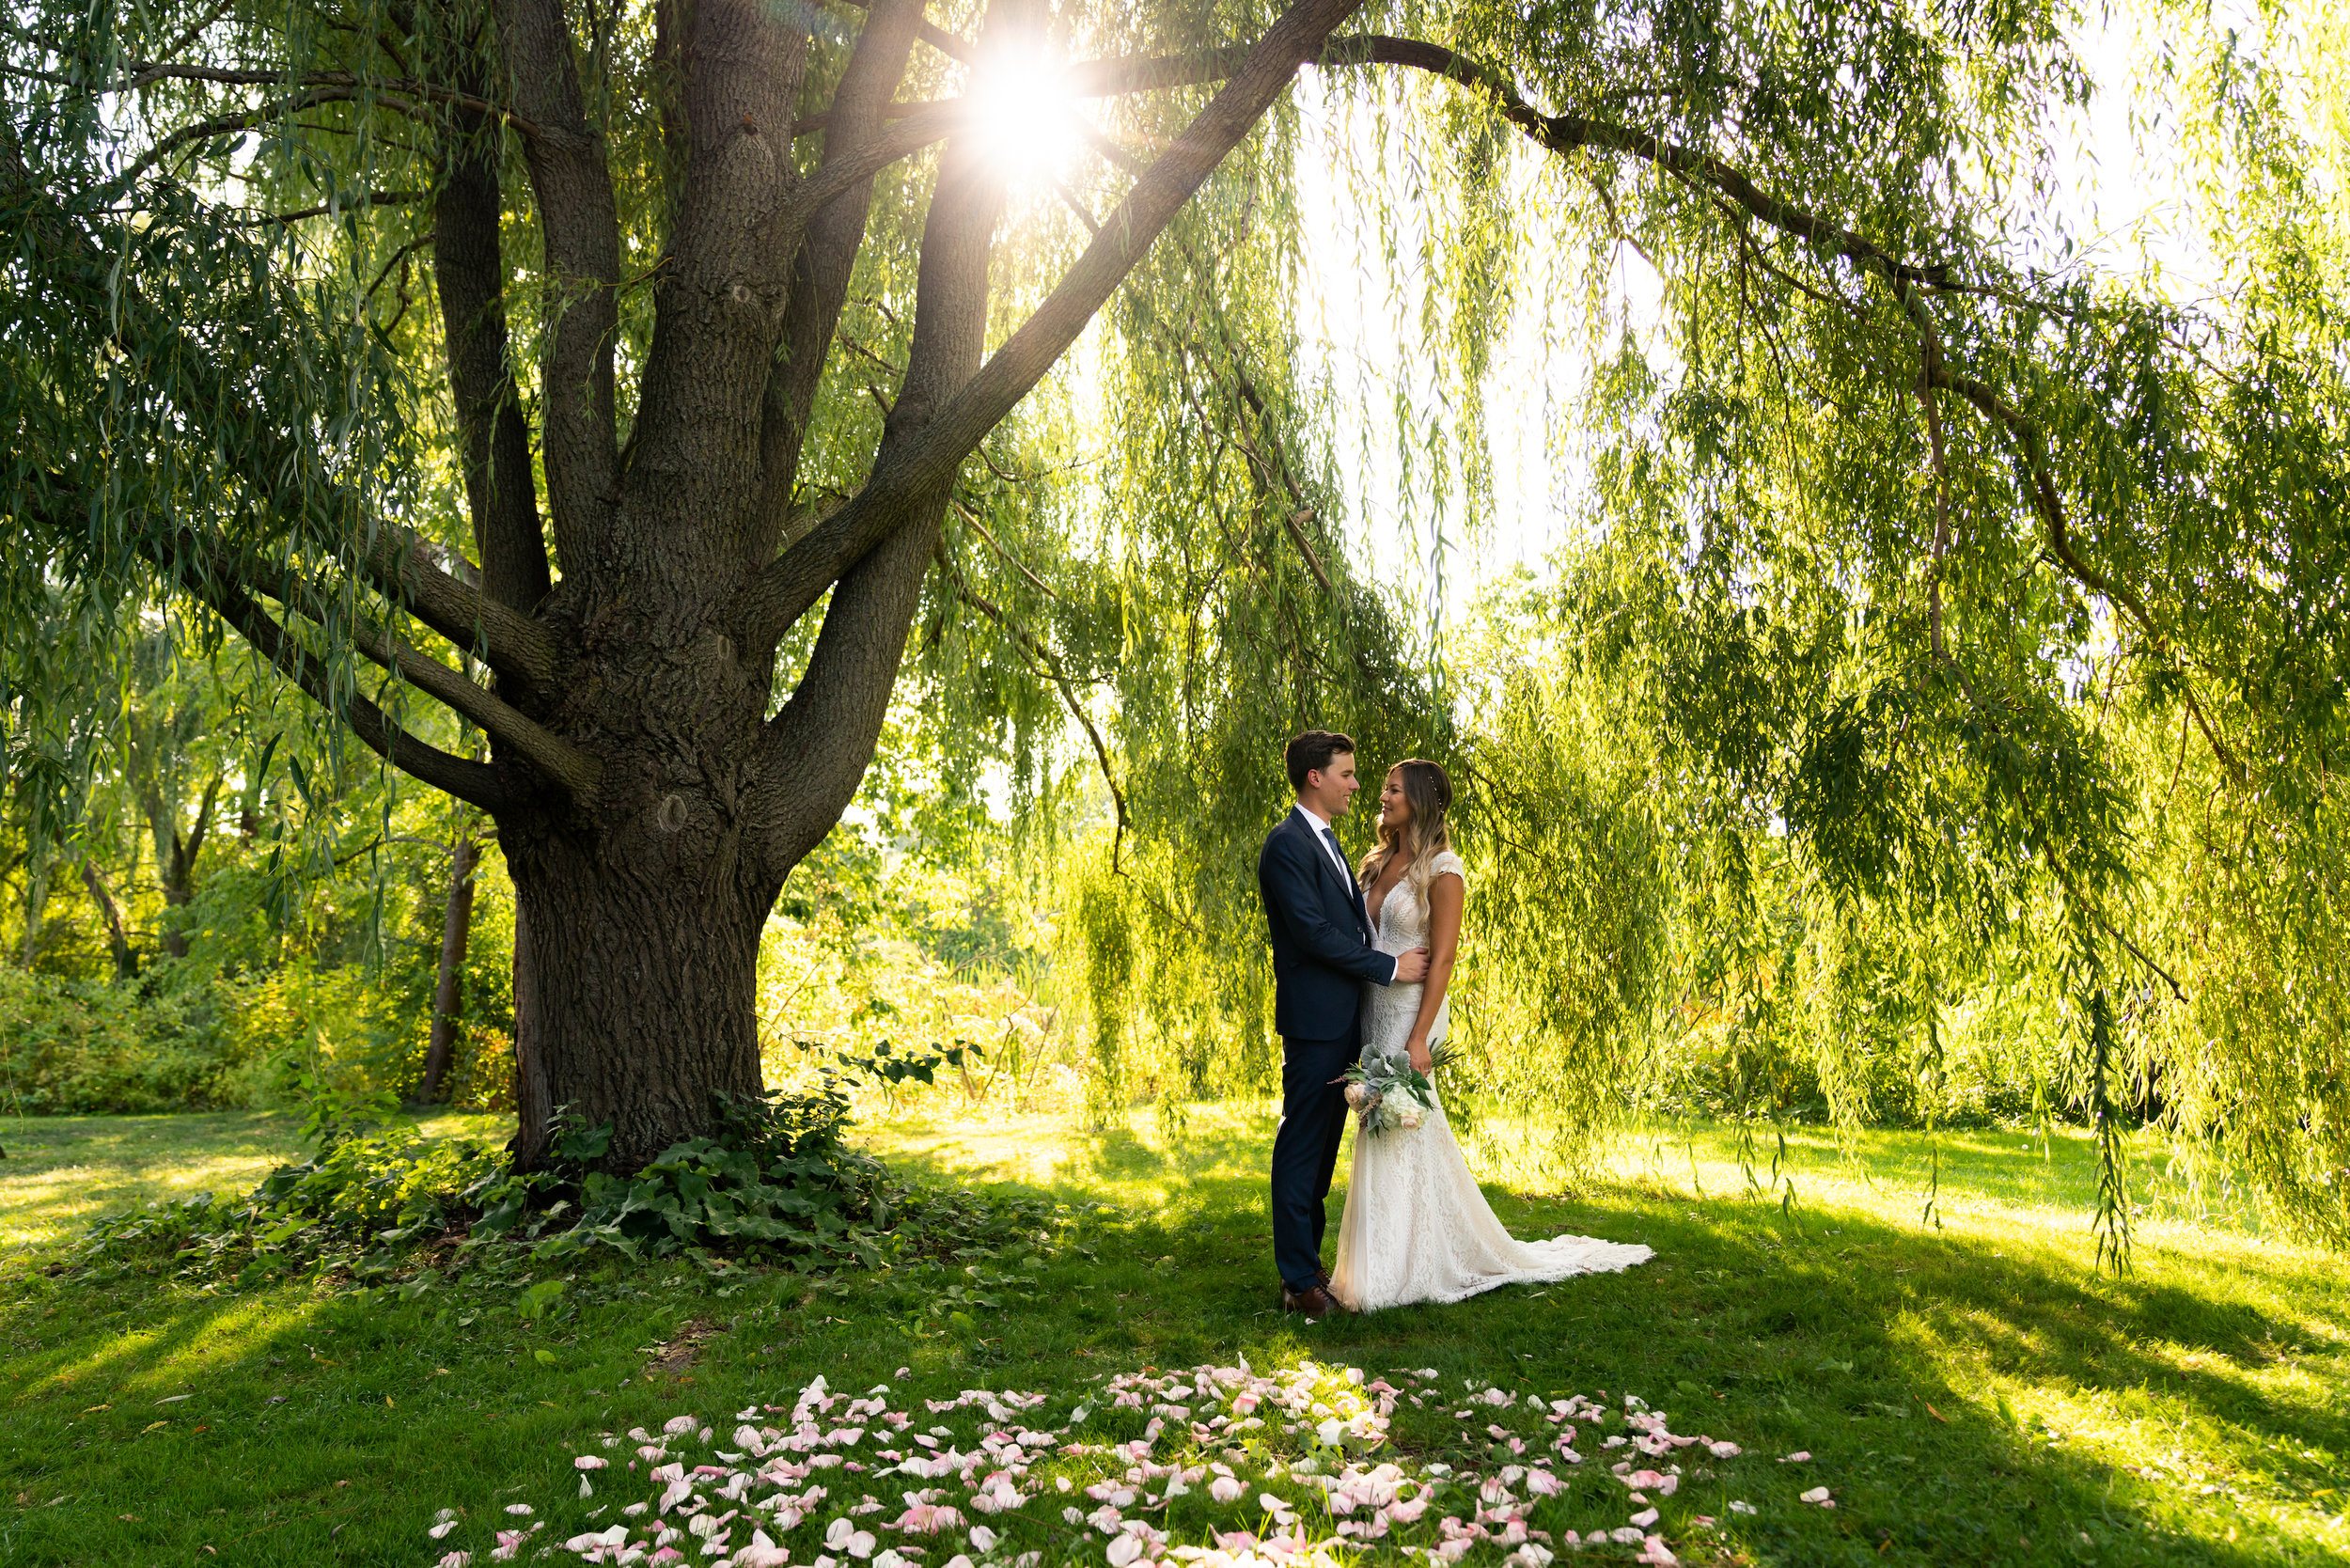 The Willow trees make the light fall in absolutely beautifully and also creates quite the backdrop. My classic light flare shining through the branches.